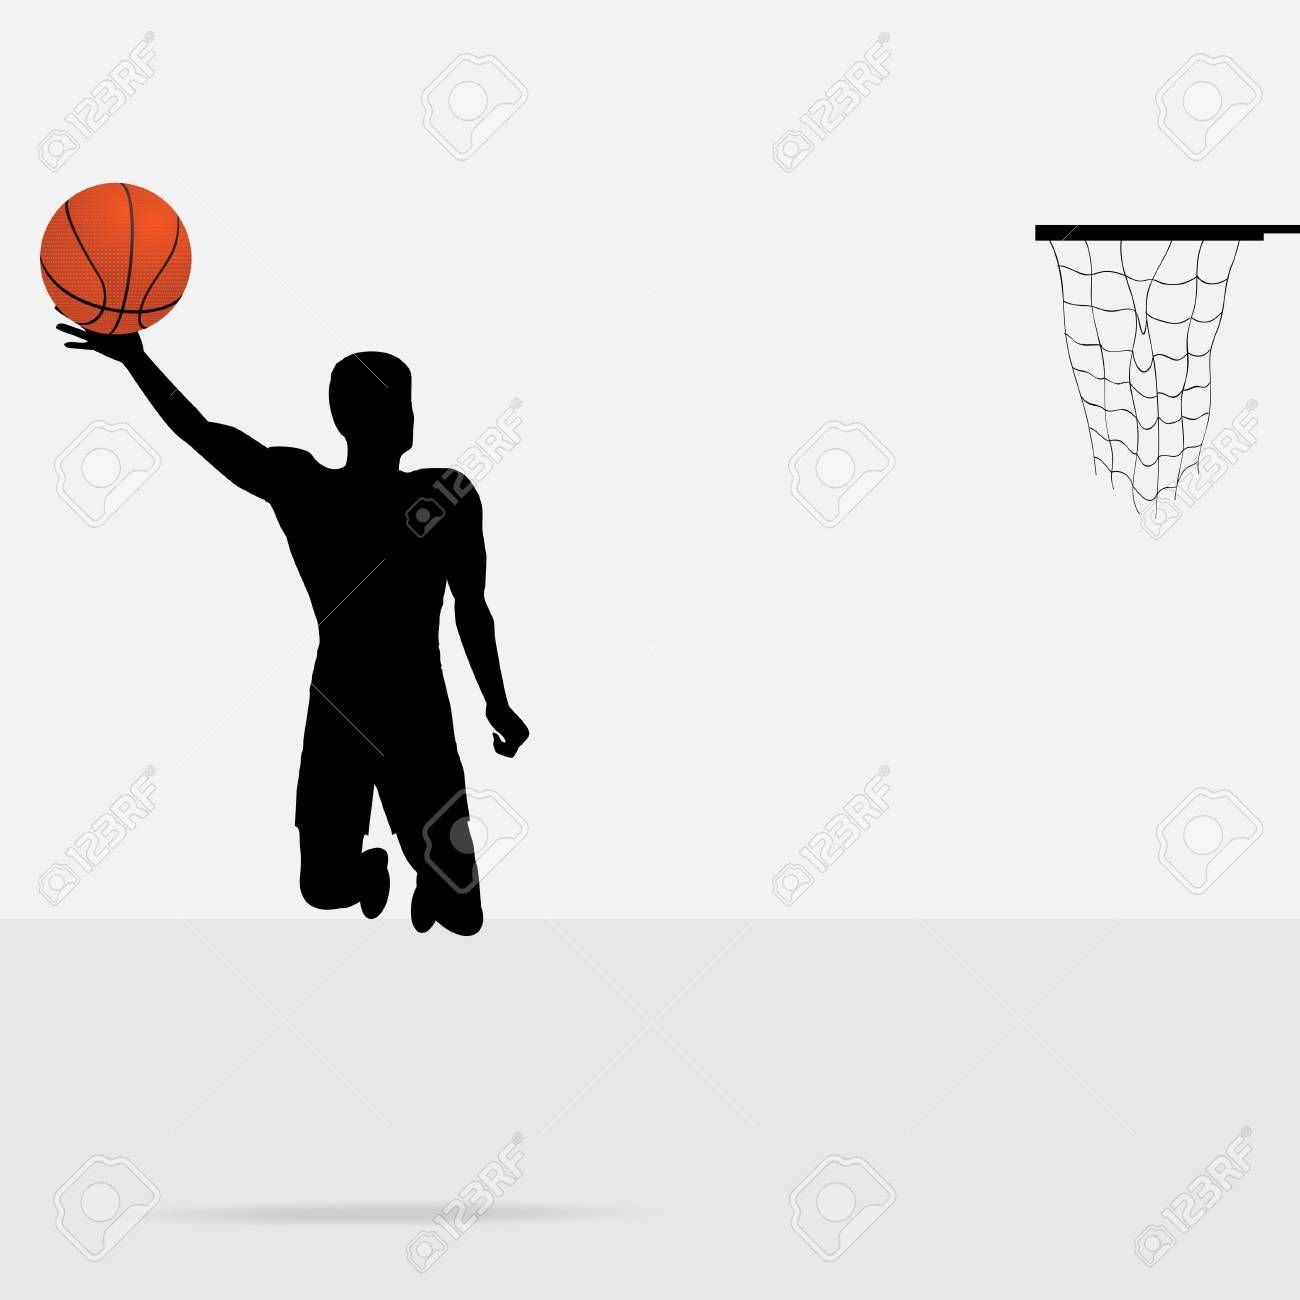 Silhouette Of A Basketball Player Jumping To Score With Detailed Ball Affiliate Player Basketball Silhouett Basketball Players Flyer Design Silhouette